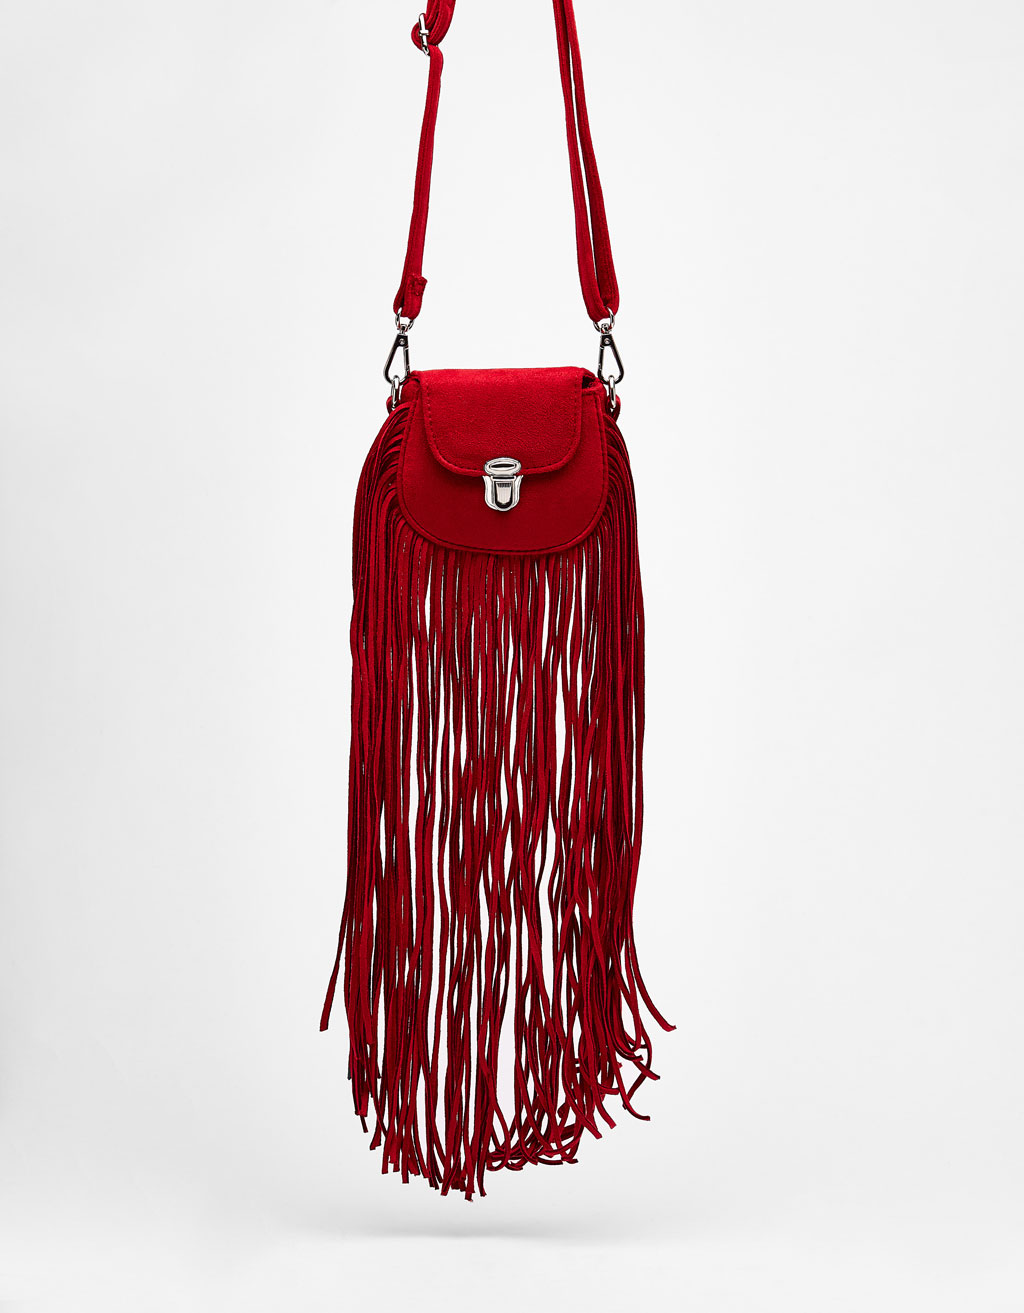 Small handbag with long fringing